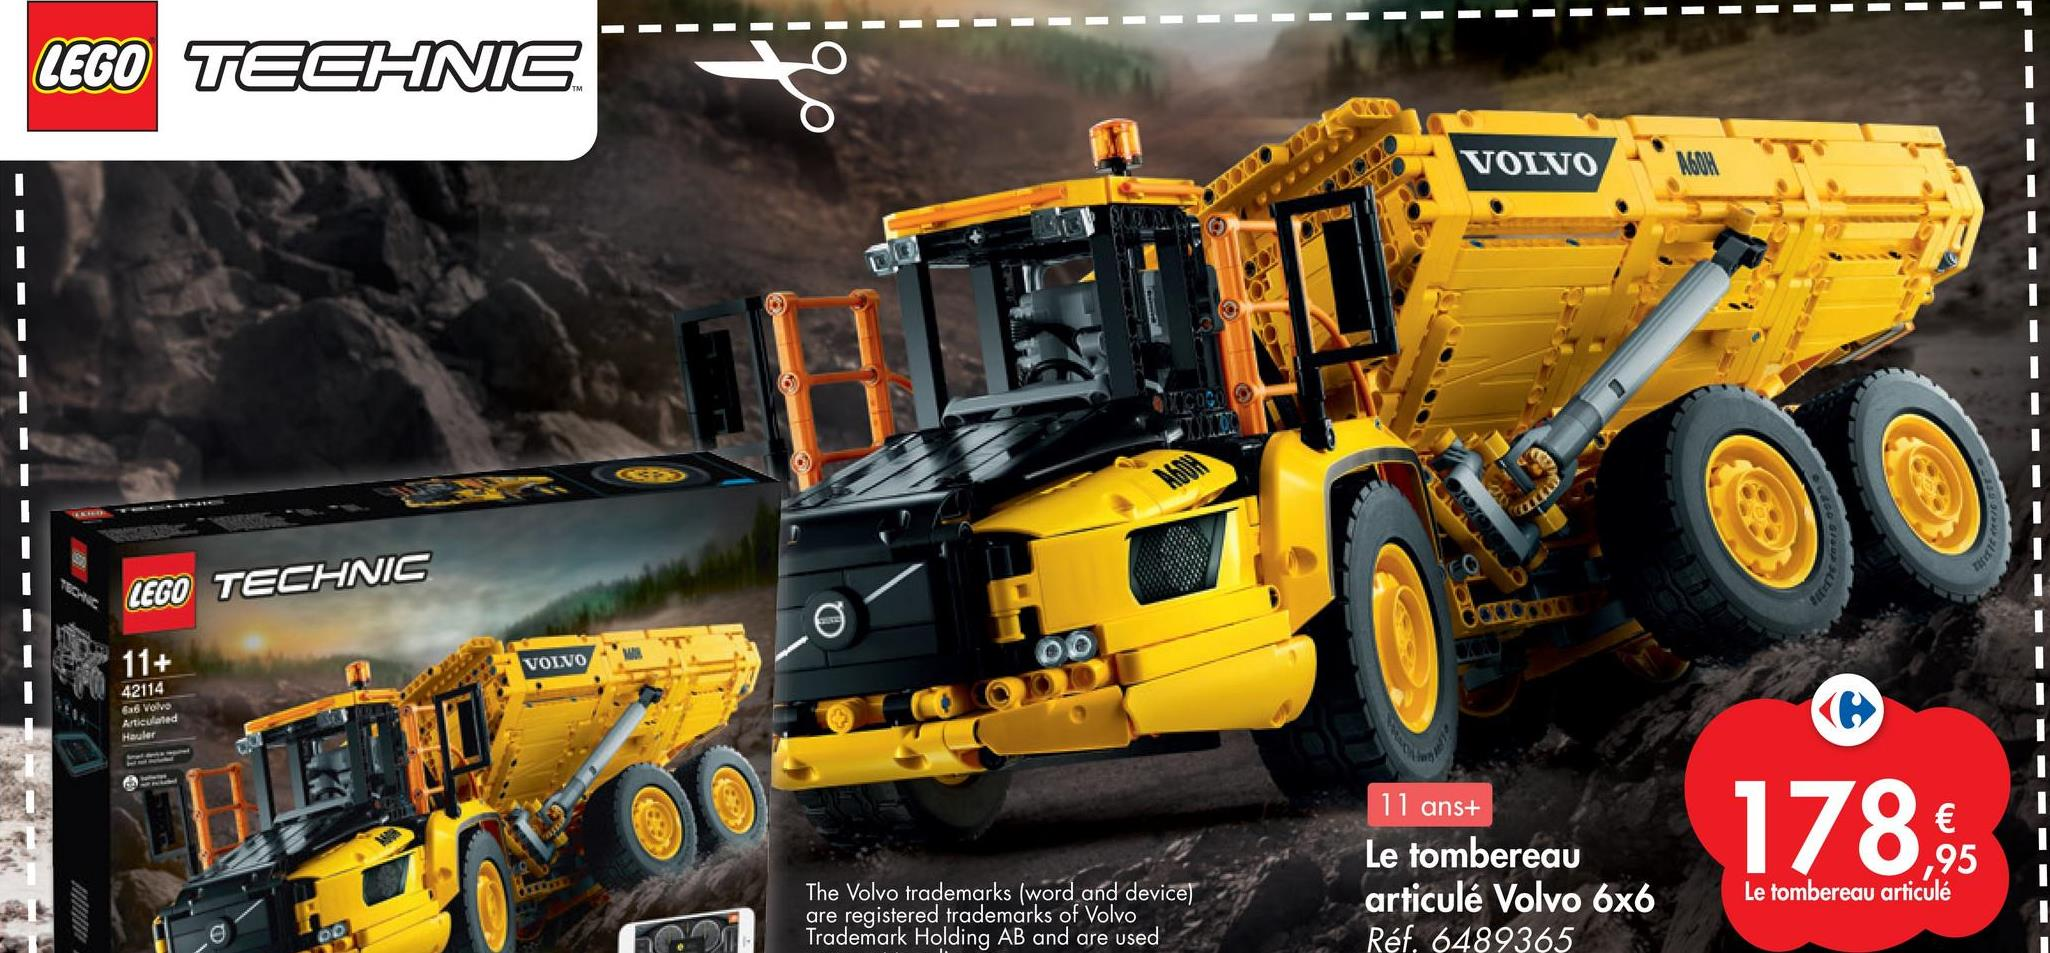 LEGO TECHNIC VOLVO WA TALE 124502 LEGO TECHNIC 11+ VOLVO 42114 6a6 Volvo Articulated Hauler 11 anst Le tombereau articulé Volvo 6x6 Réf. 6489365 178 € 1,95 Le tombereau articulé The Volvo trademarks (word and device) are registered trademarks of Volvo Trademark Holding AB and are used OO